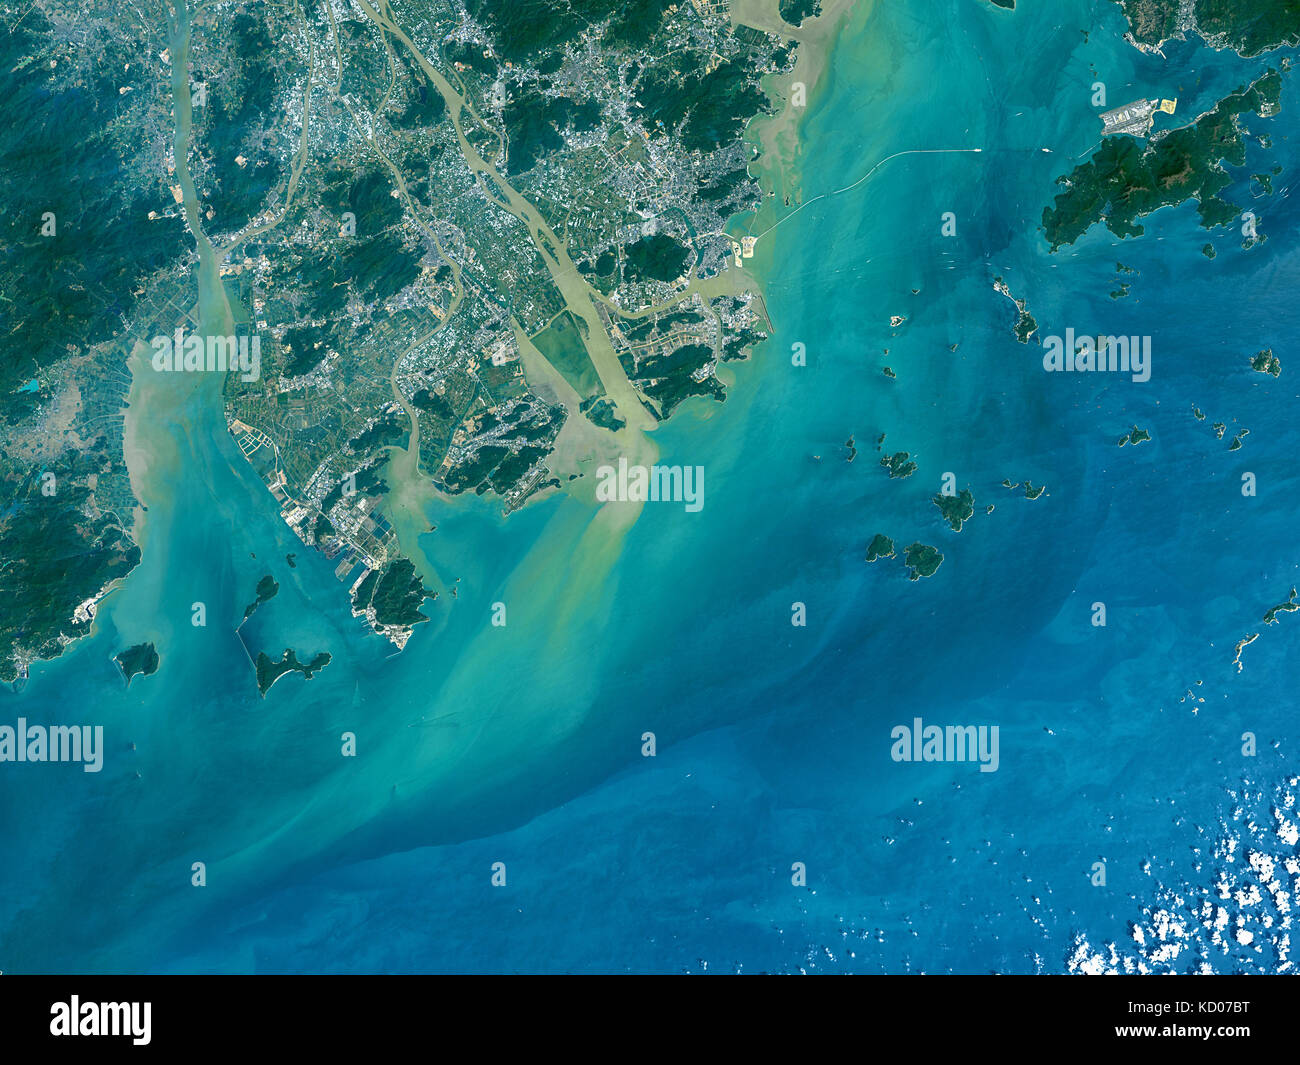 Satellite image of the Honk Kong and the Pearl River delta, Hong Kong - Stock Image